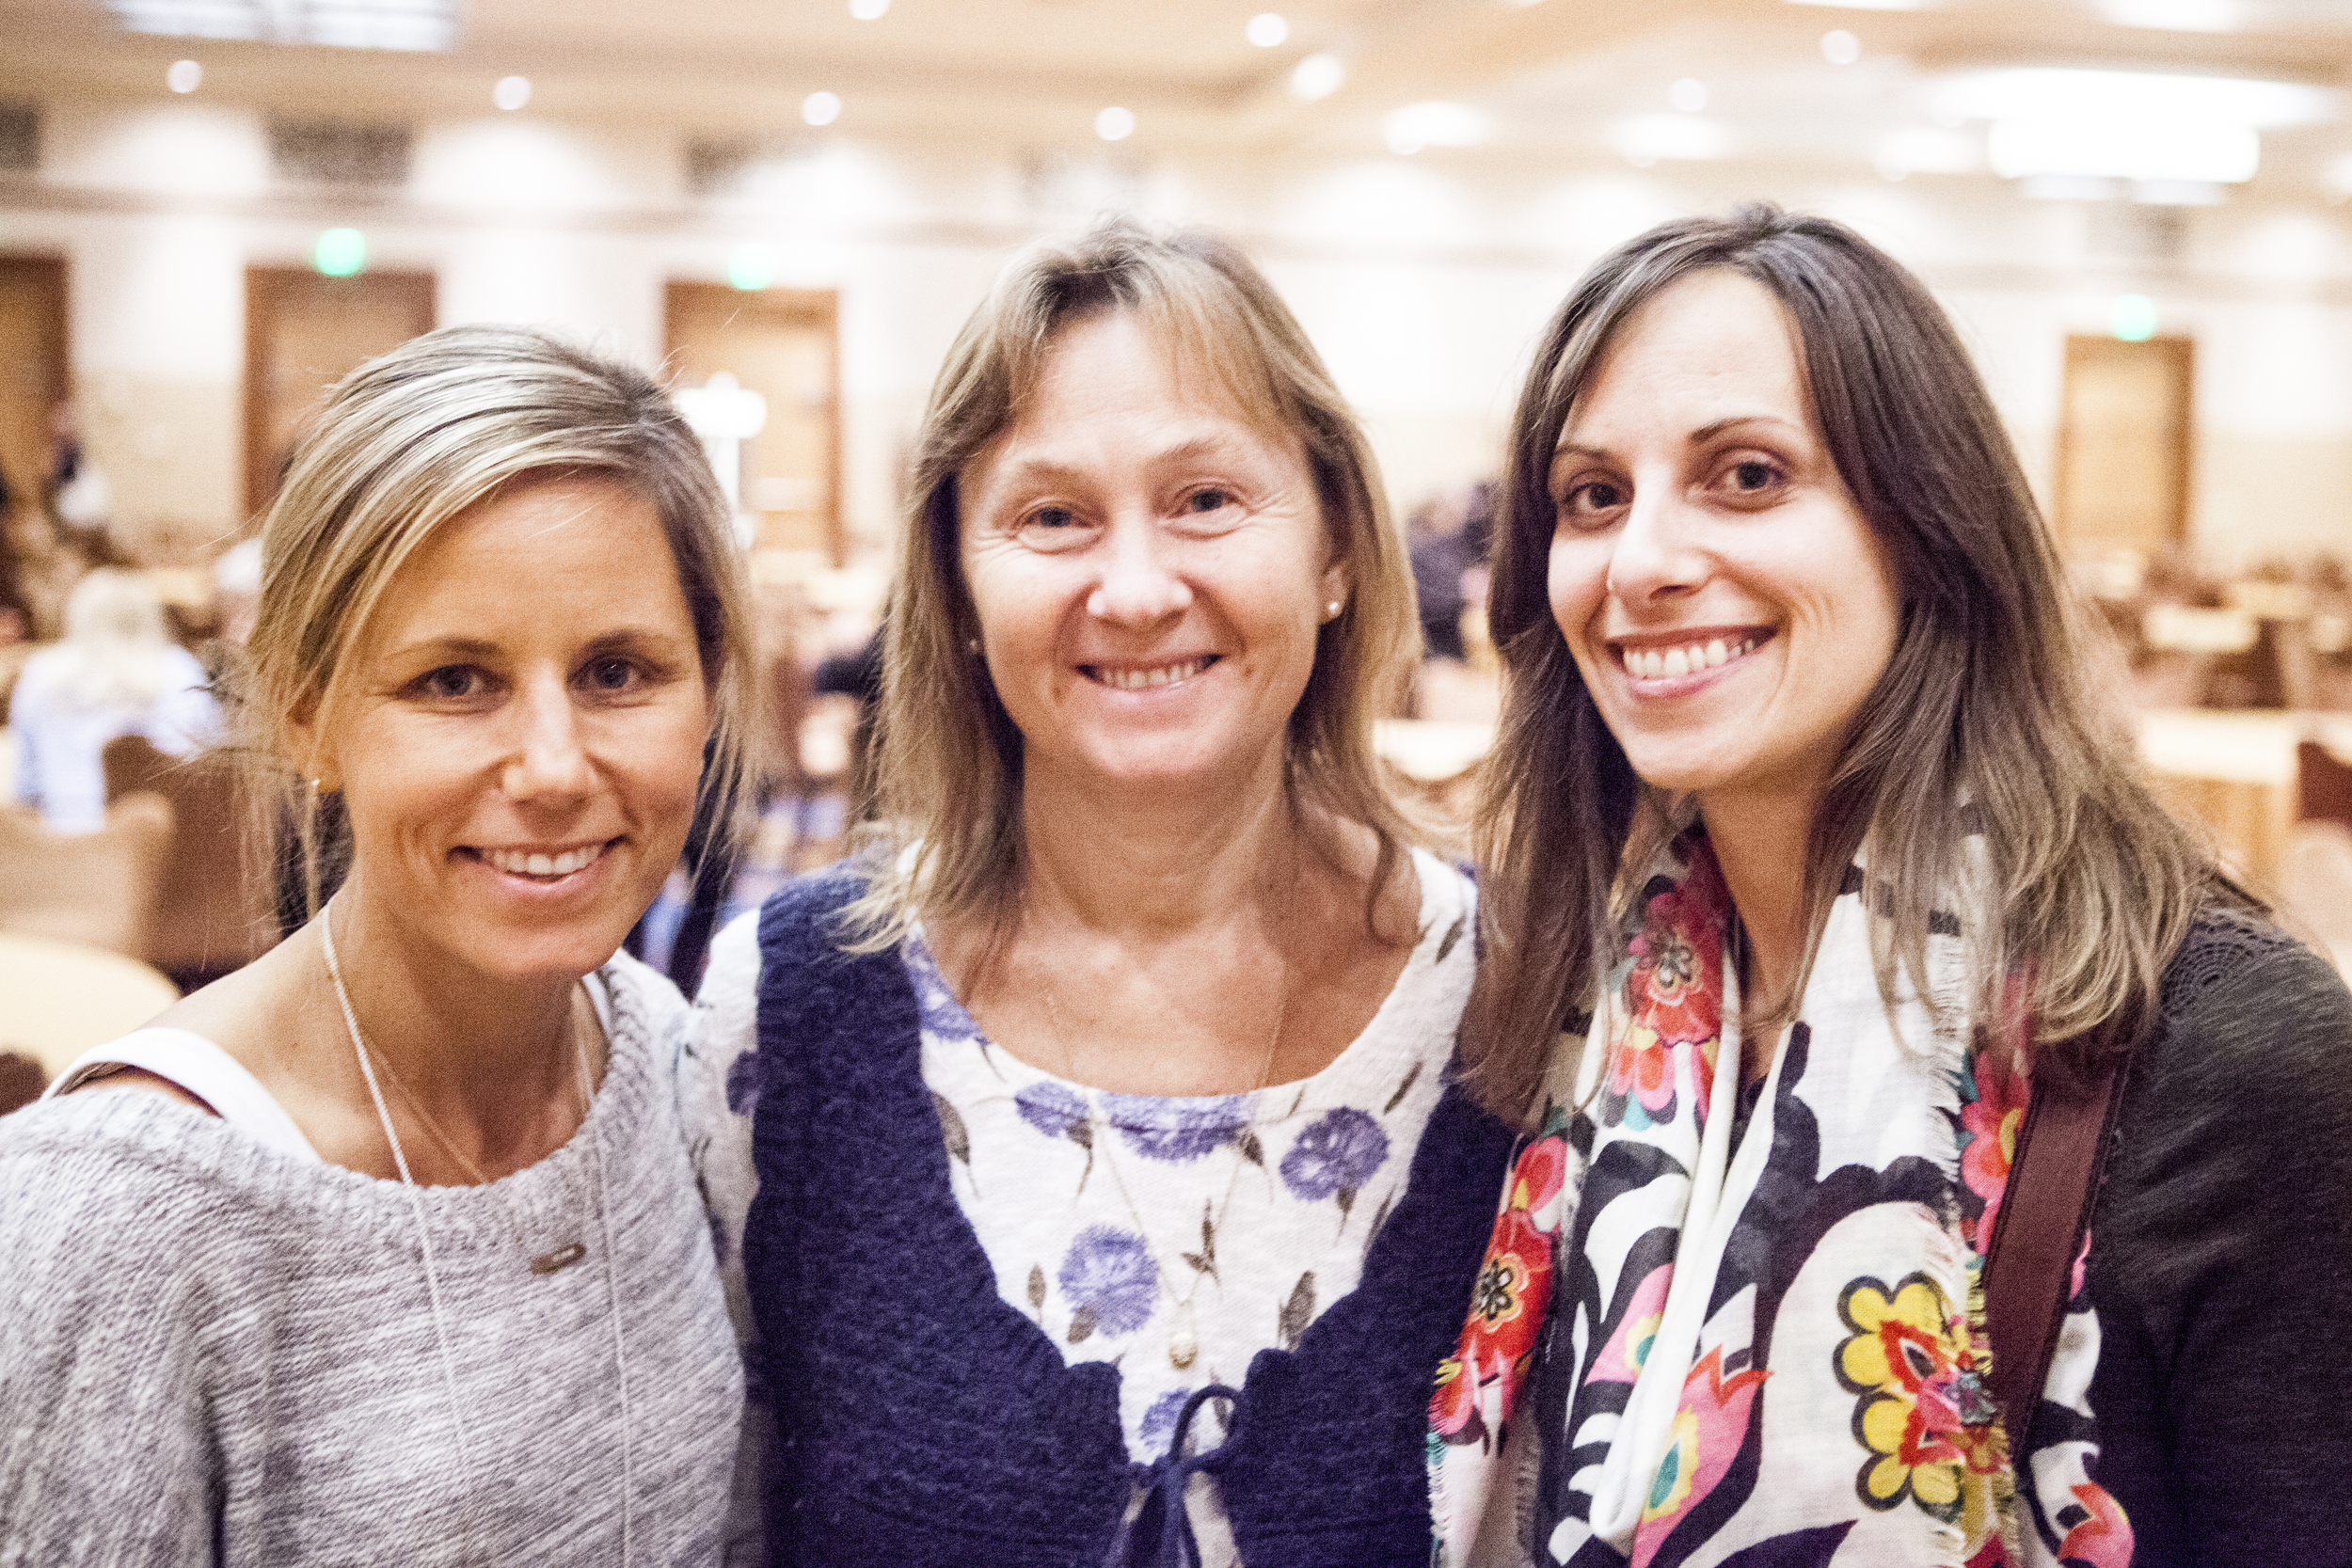 Hilary, Dr. Natasha and Mary at the 2014 Weston A Price Foundation Conference